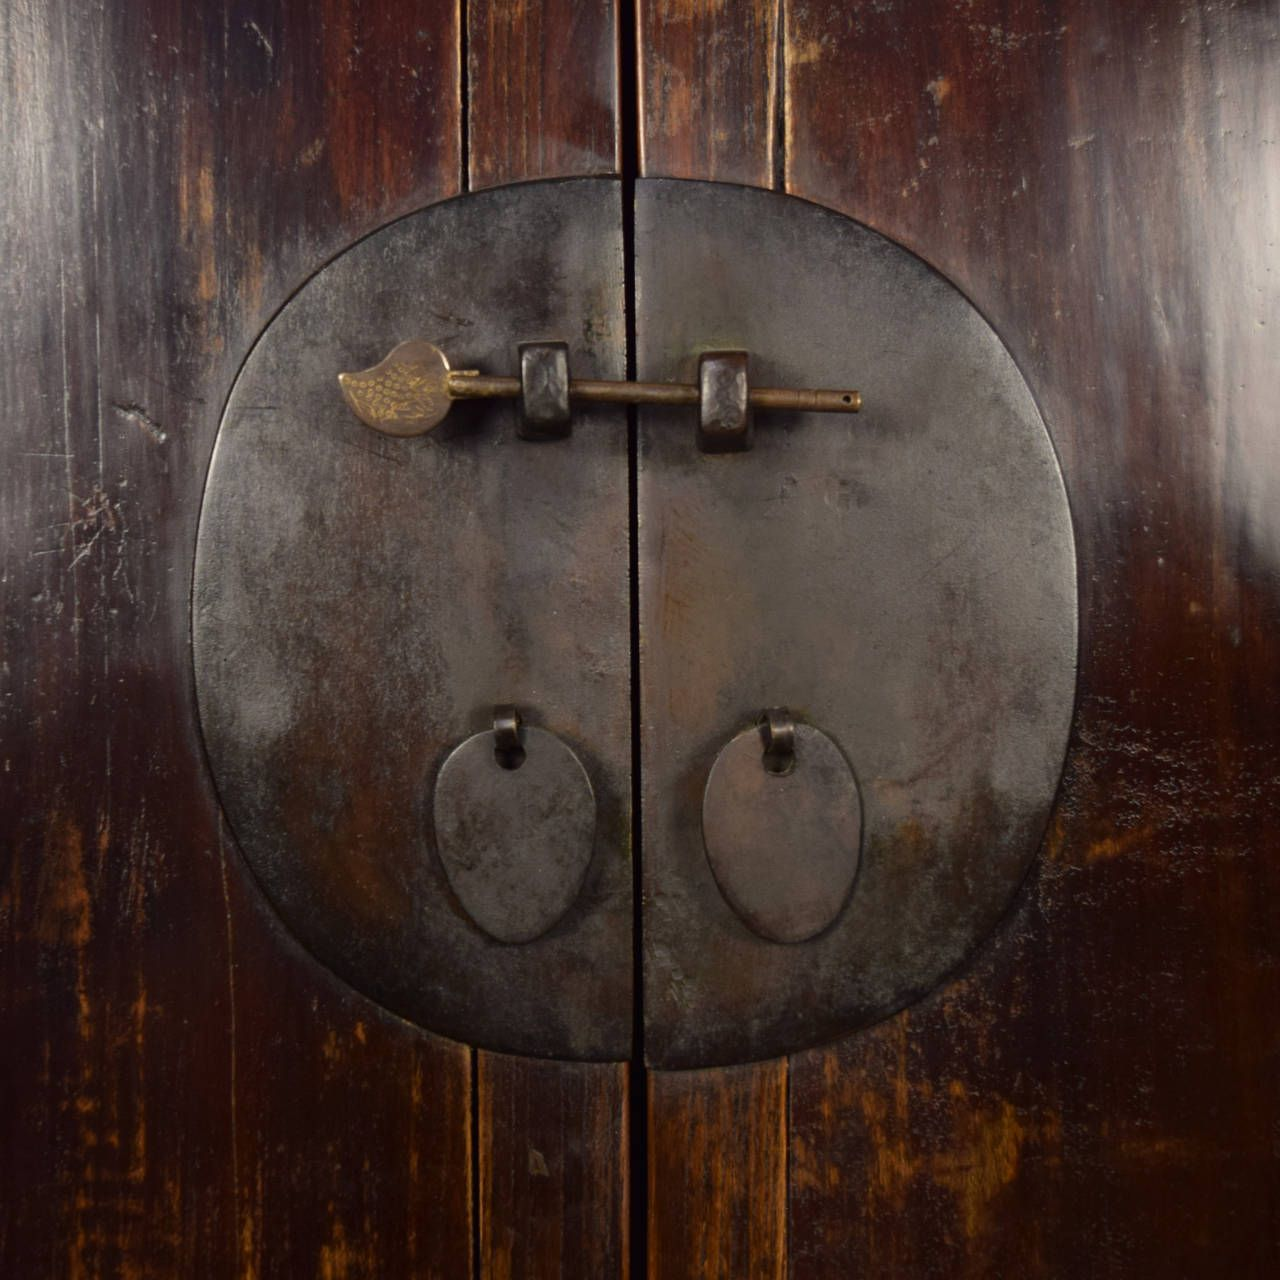 Chinese Cabinet Hardware   Google Search